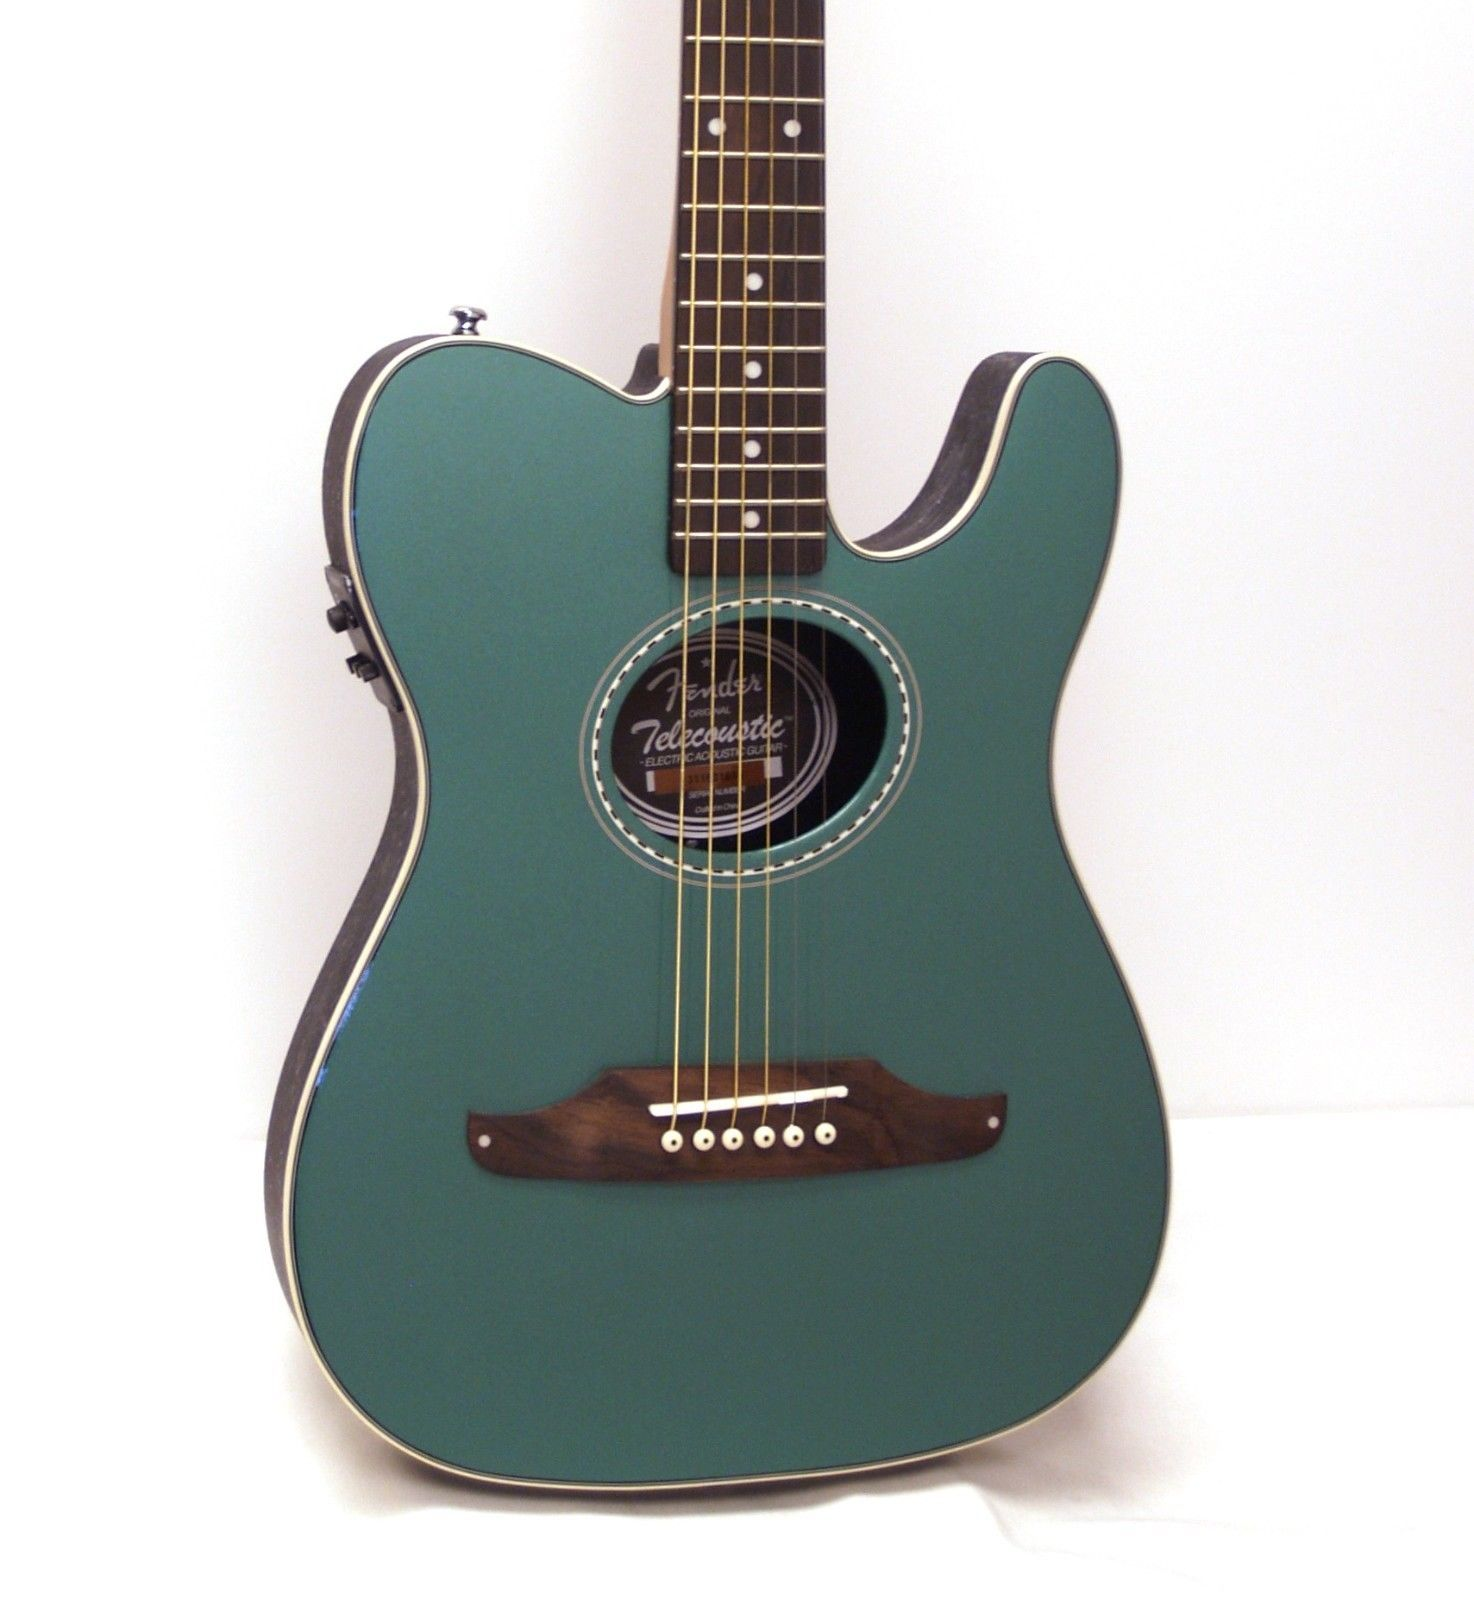 fender telecoustic plus acoustic electric guitar sherwood green guitars we sell pinterest. Black Bedroom Furniture Sets. Home Design Ideas